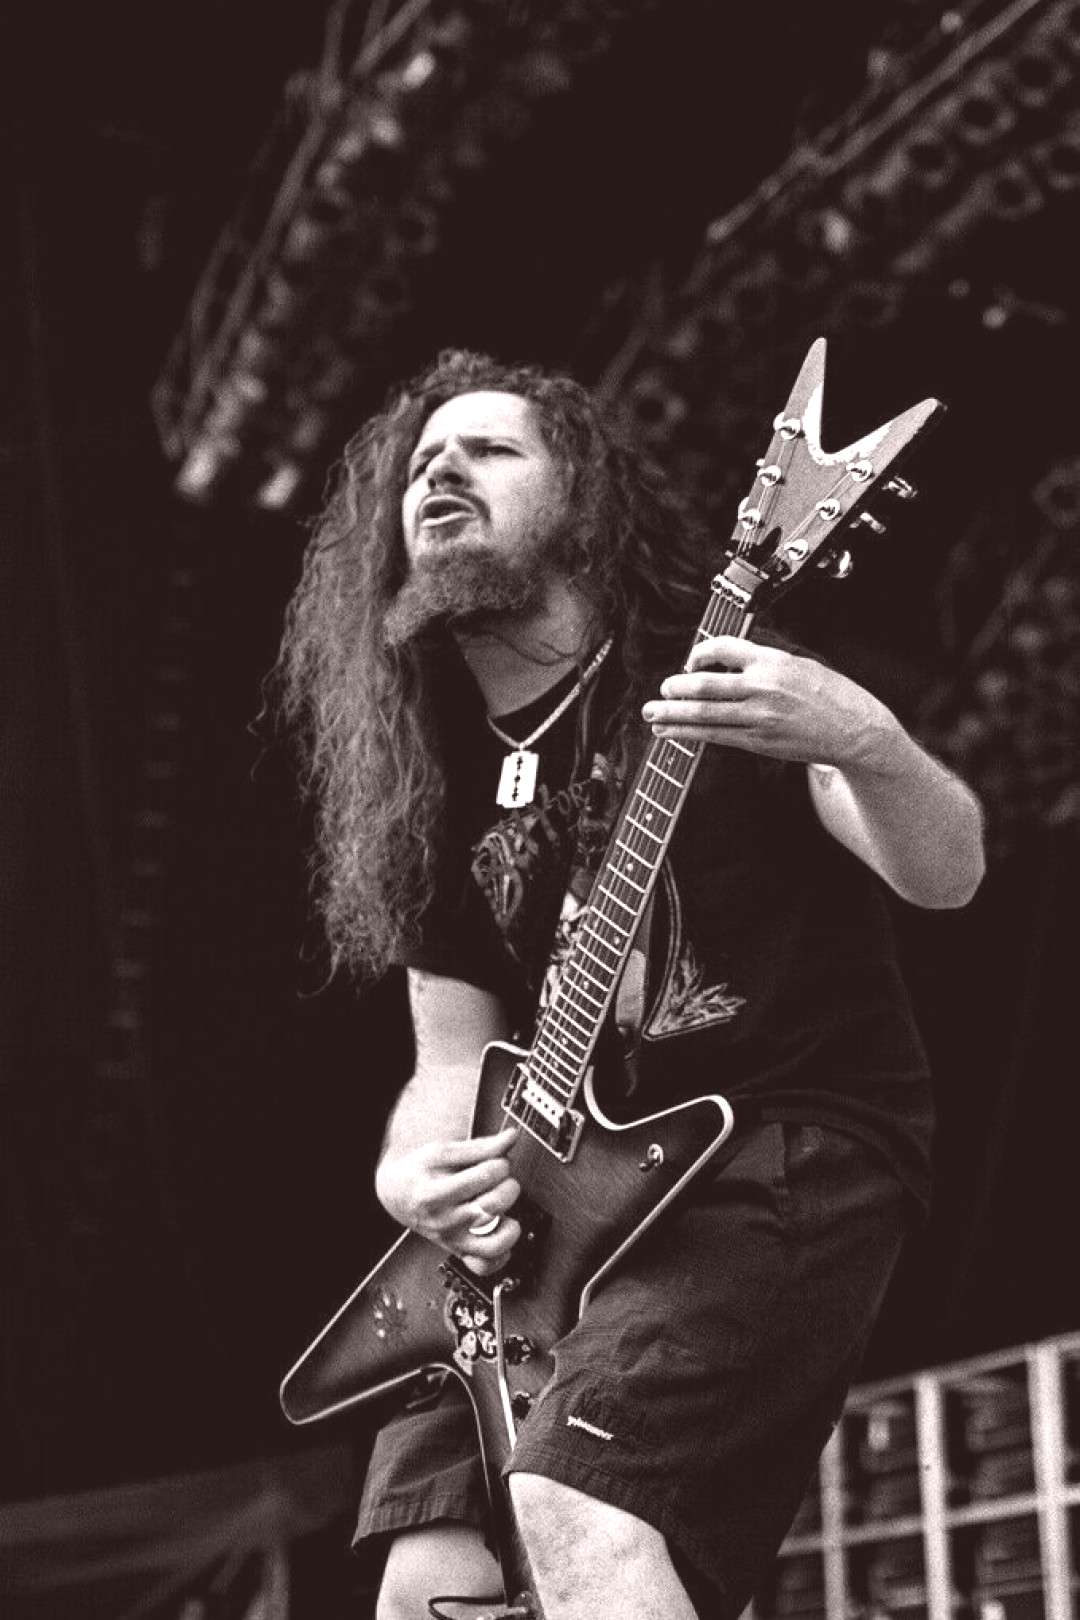 Z-1925 Dimebag Darrell Music Rock Band Singer Metal Guitarist Art Poster Decor - Poster Music - -